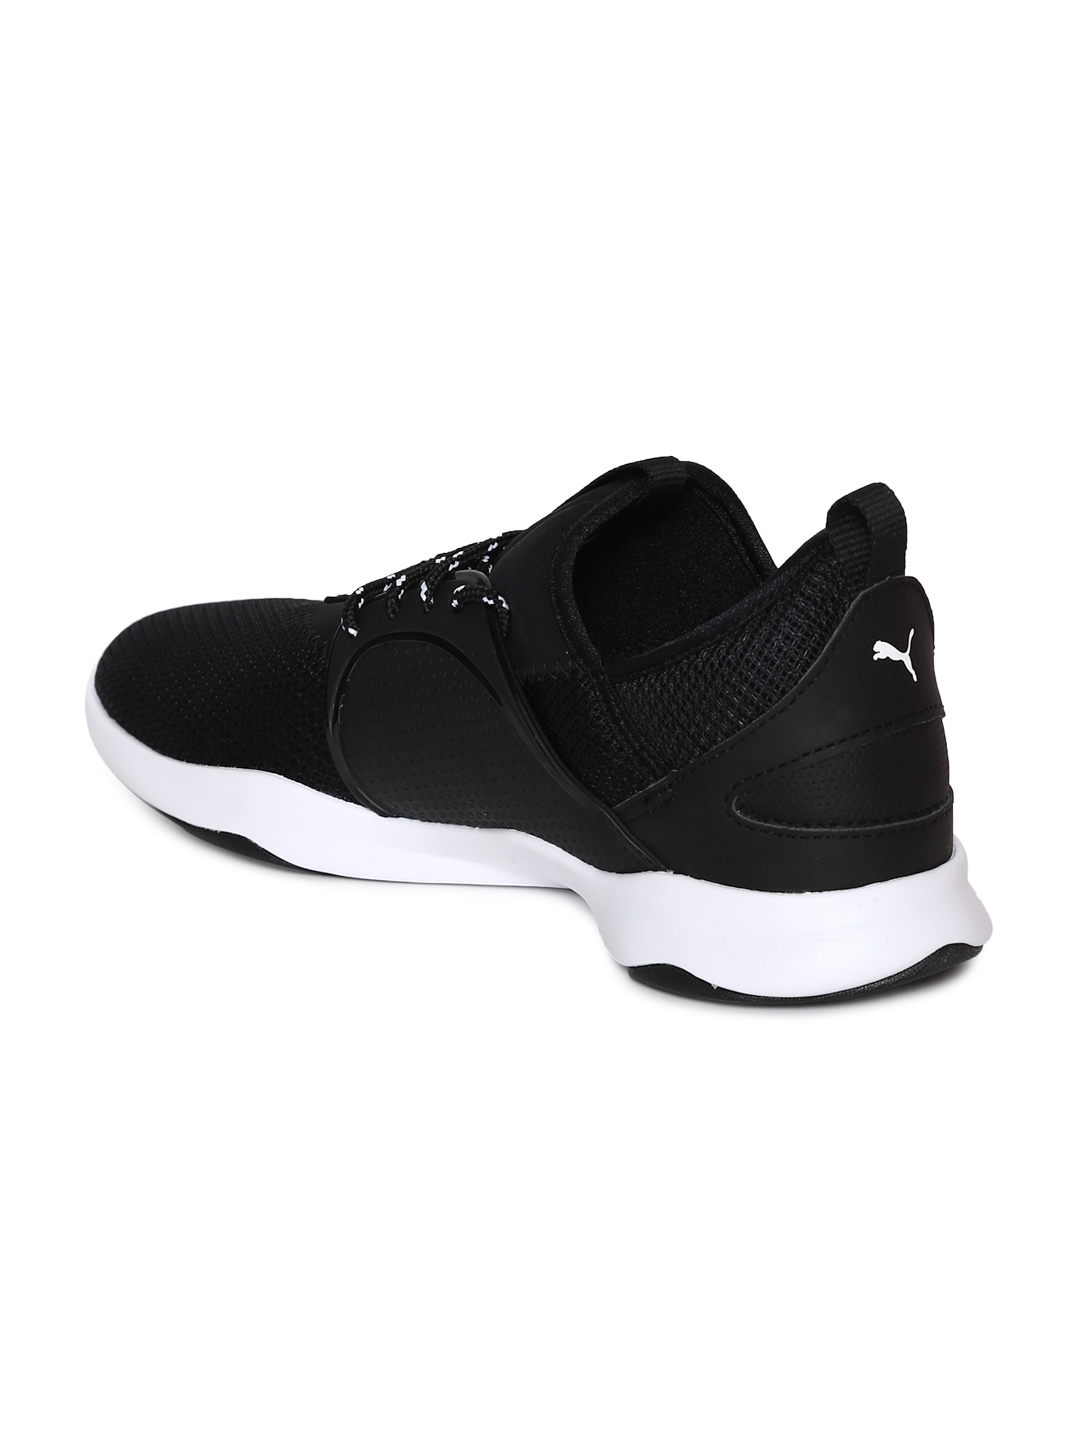 2be212ed3c4996 Buy Puma Unisex Black Dare Lace Sneakers - Casual Shoes for Unisex ...